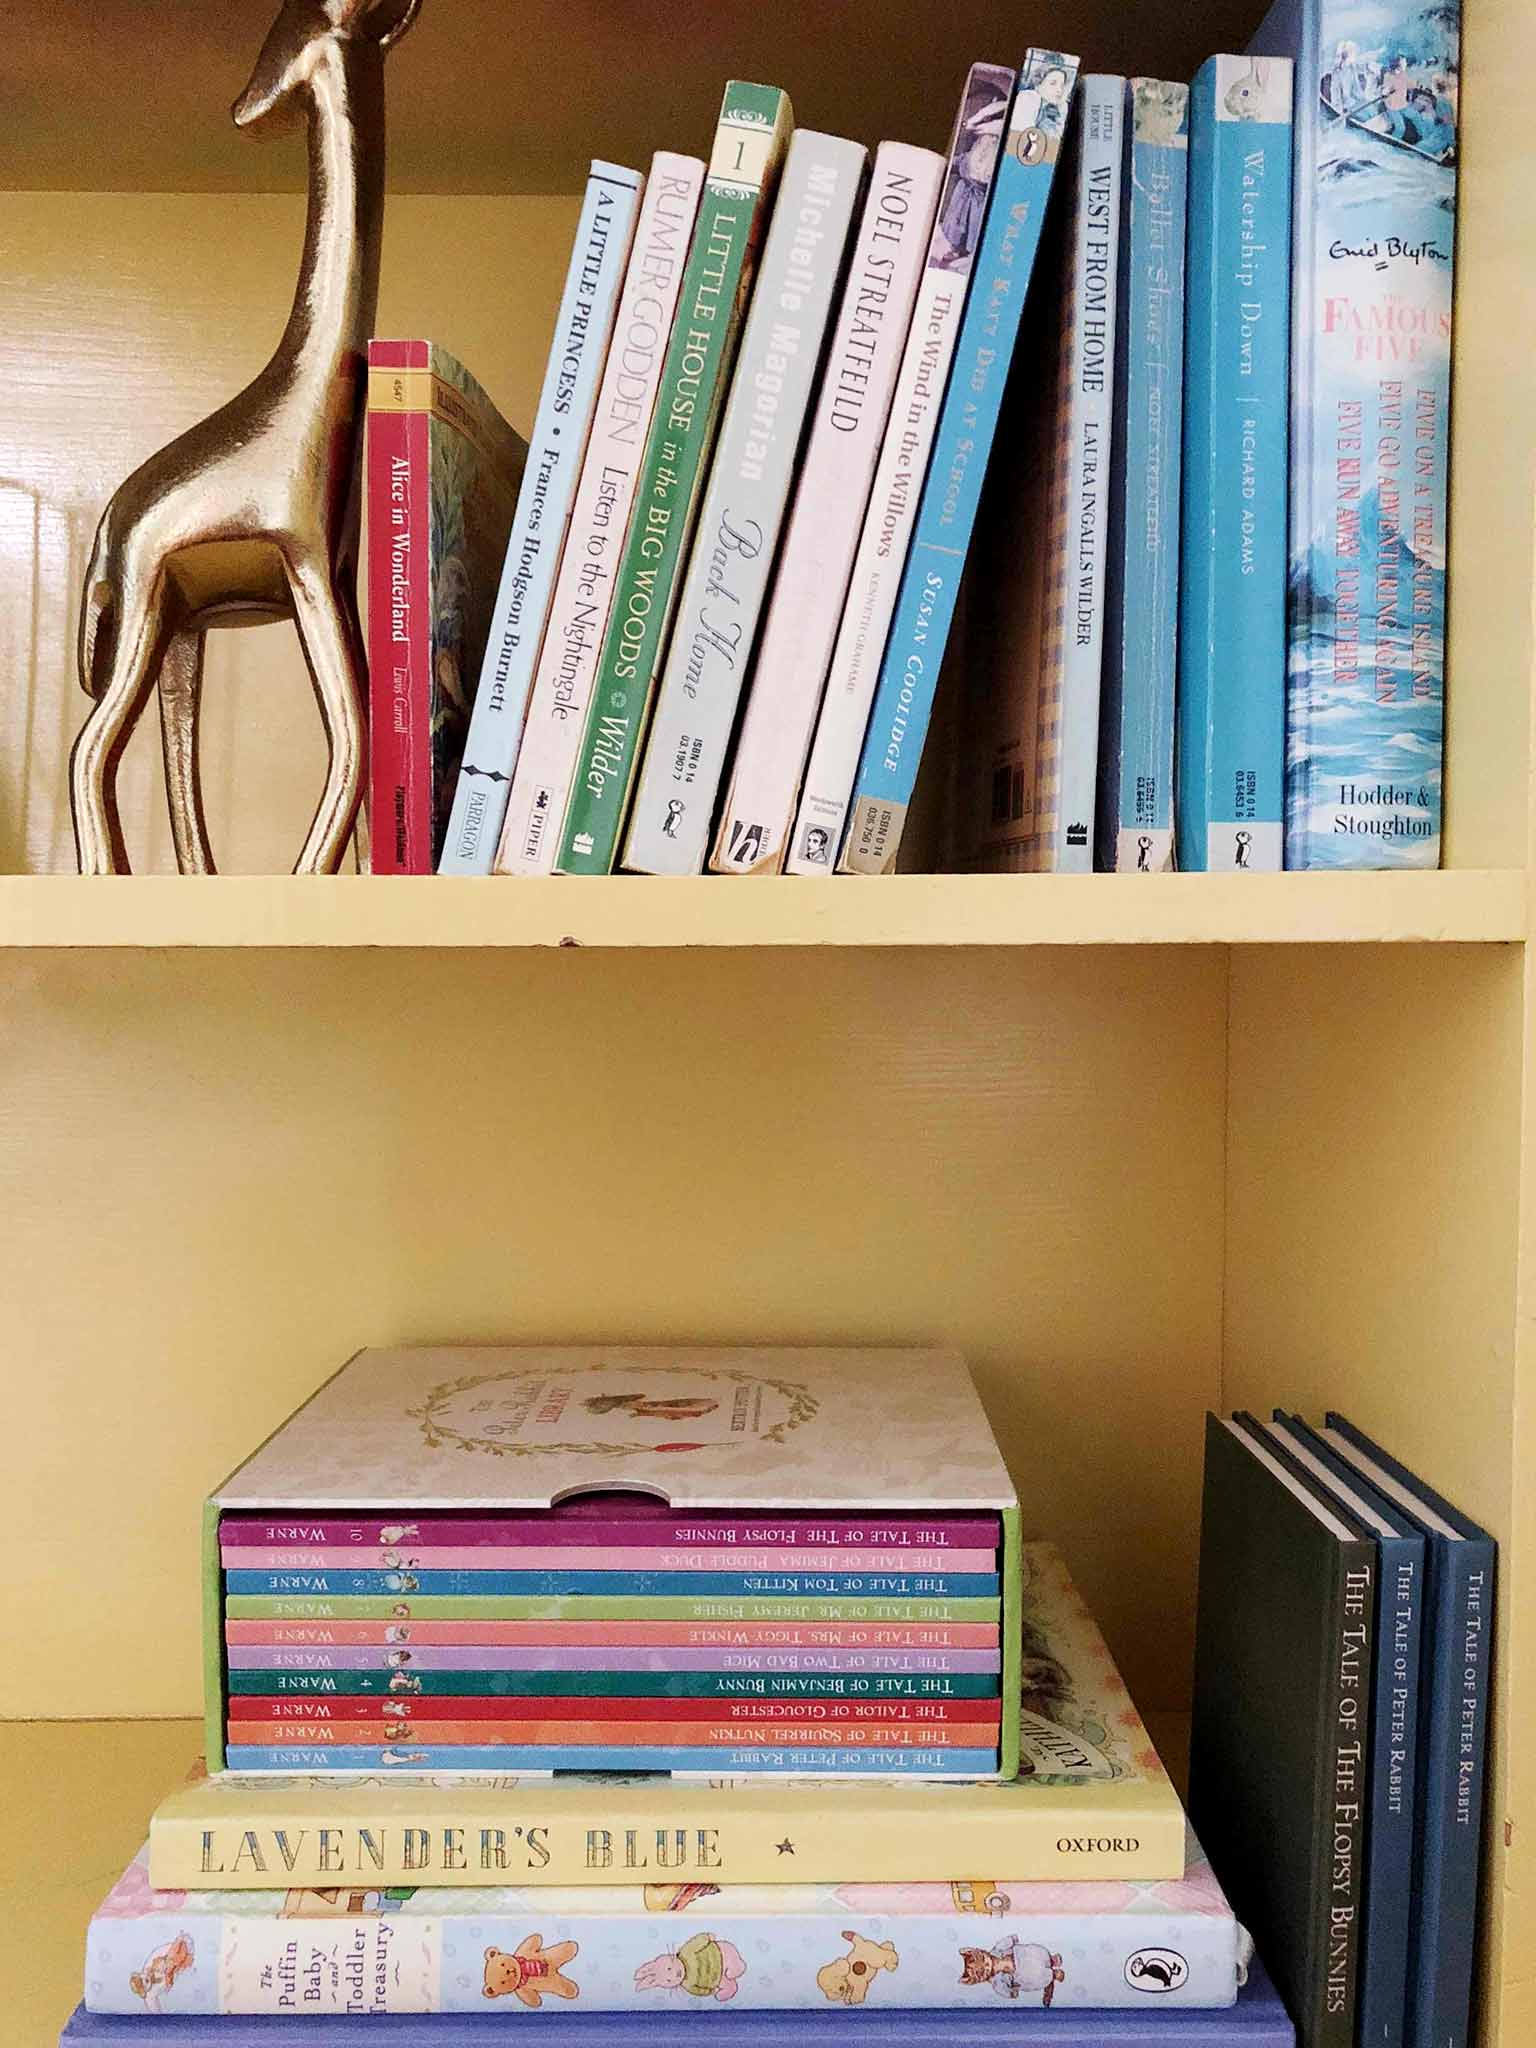 Book shelf styling - How to Declutter, Organize and Style Kids' Books - That Homebird Life Blog